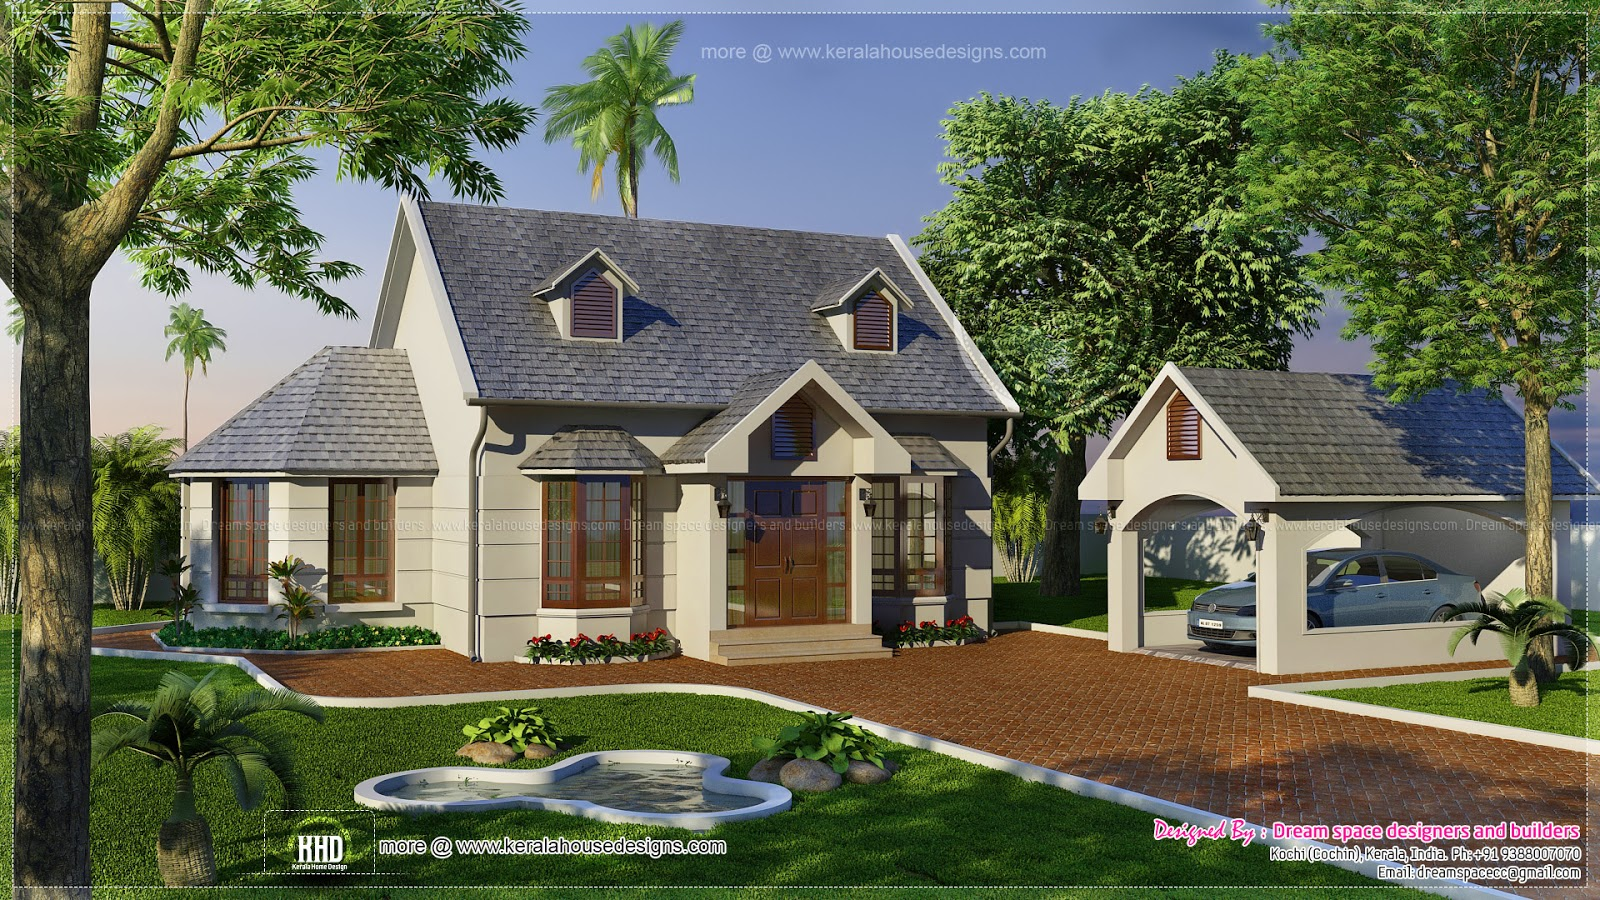 Vacation garden home design in 1200 home kerala for Home garden design